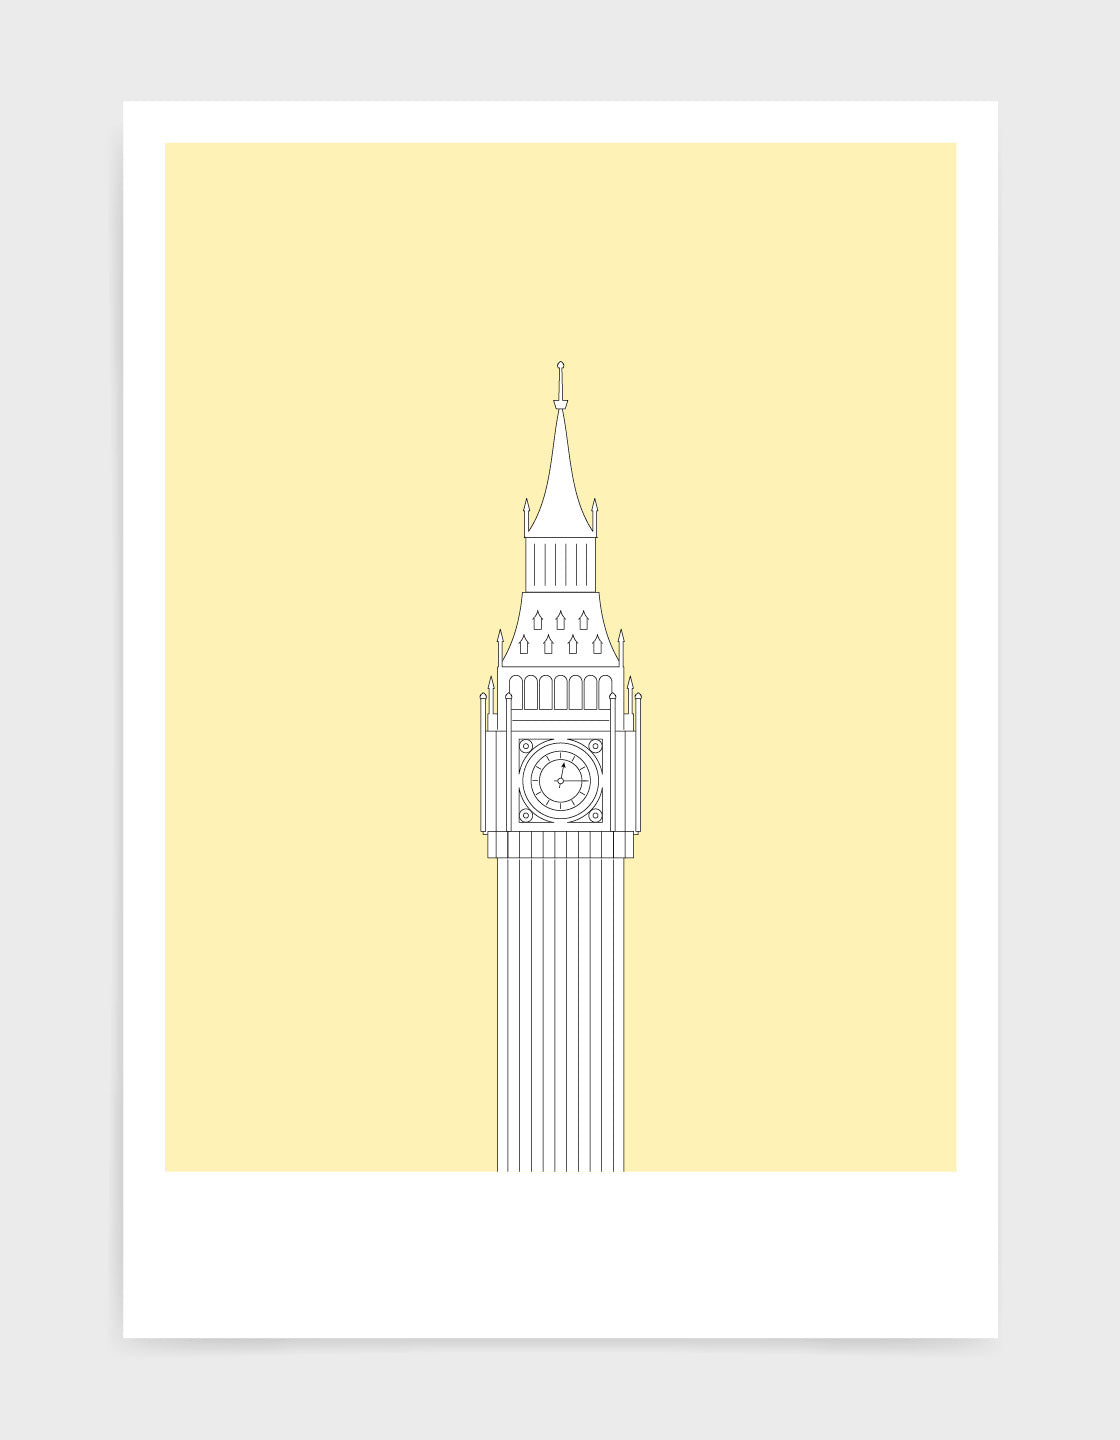 illustration of Big Ben in white against a light yellow background